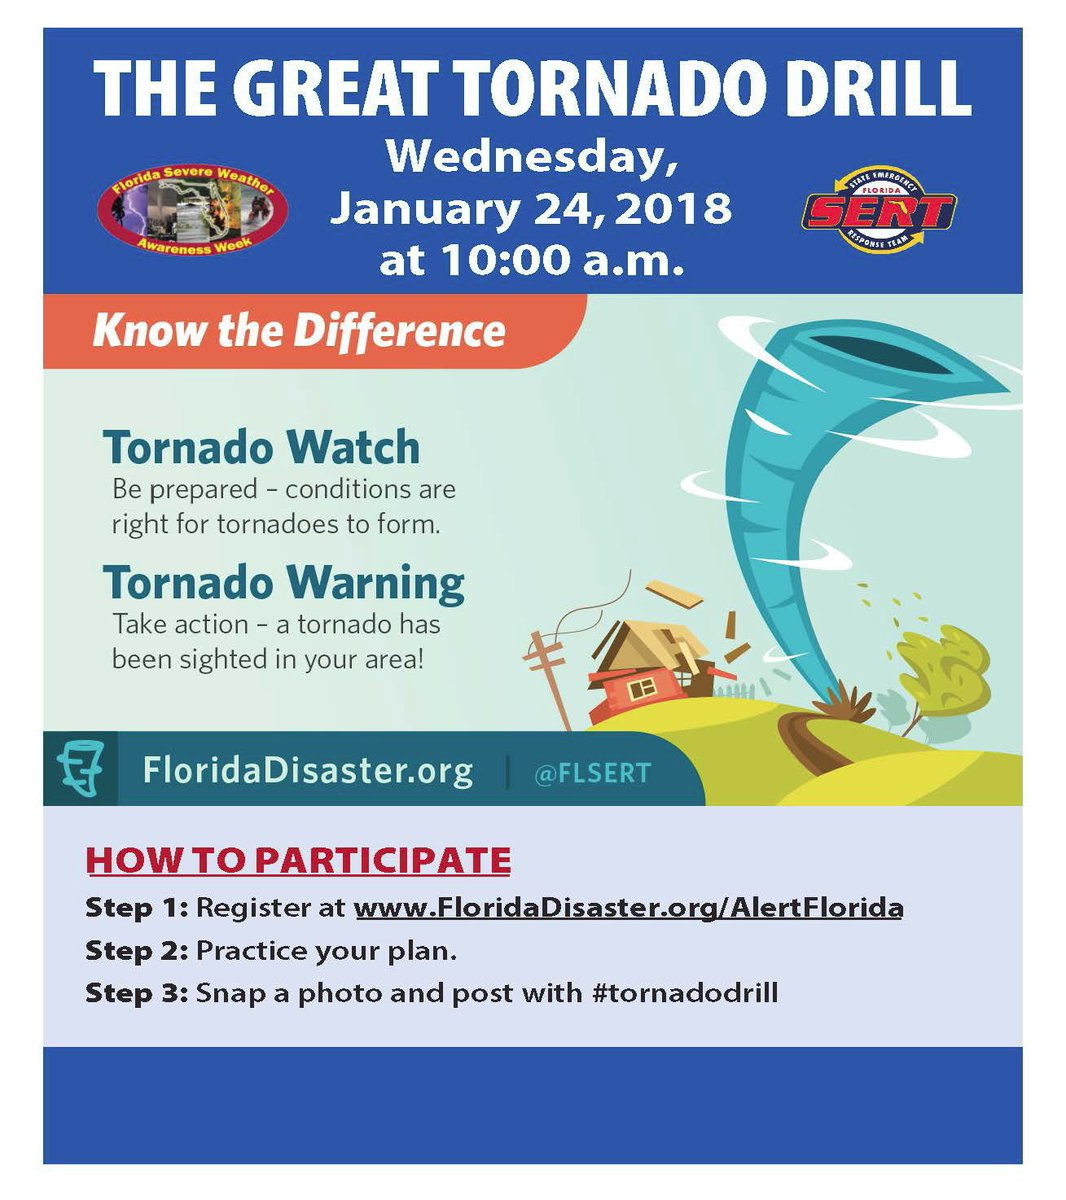 Nws Tampa Bay On Twitter The 2018 Great Tornado Drill Will Take